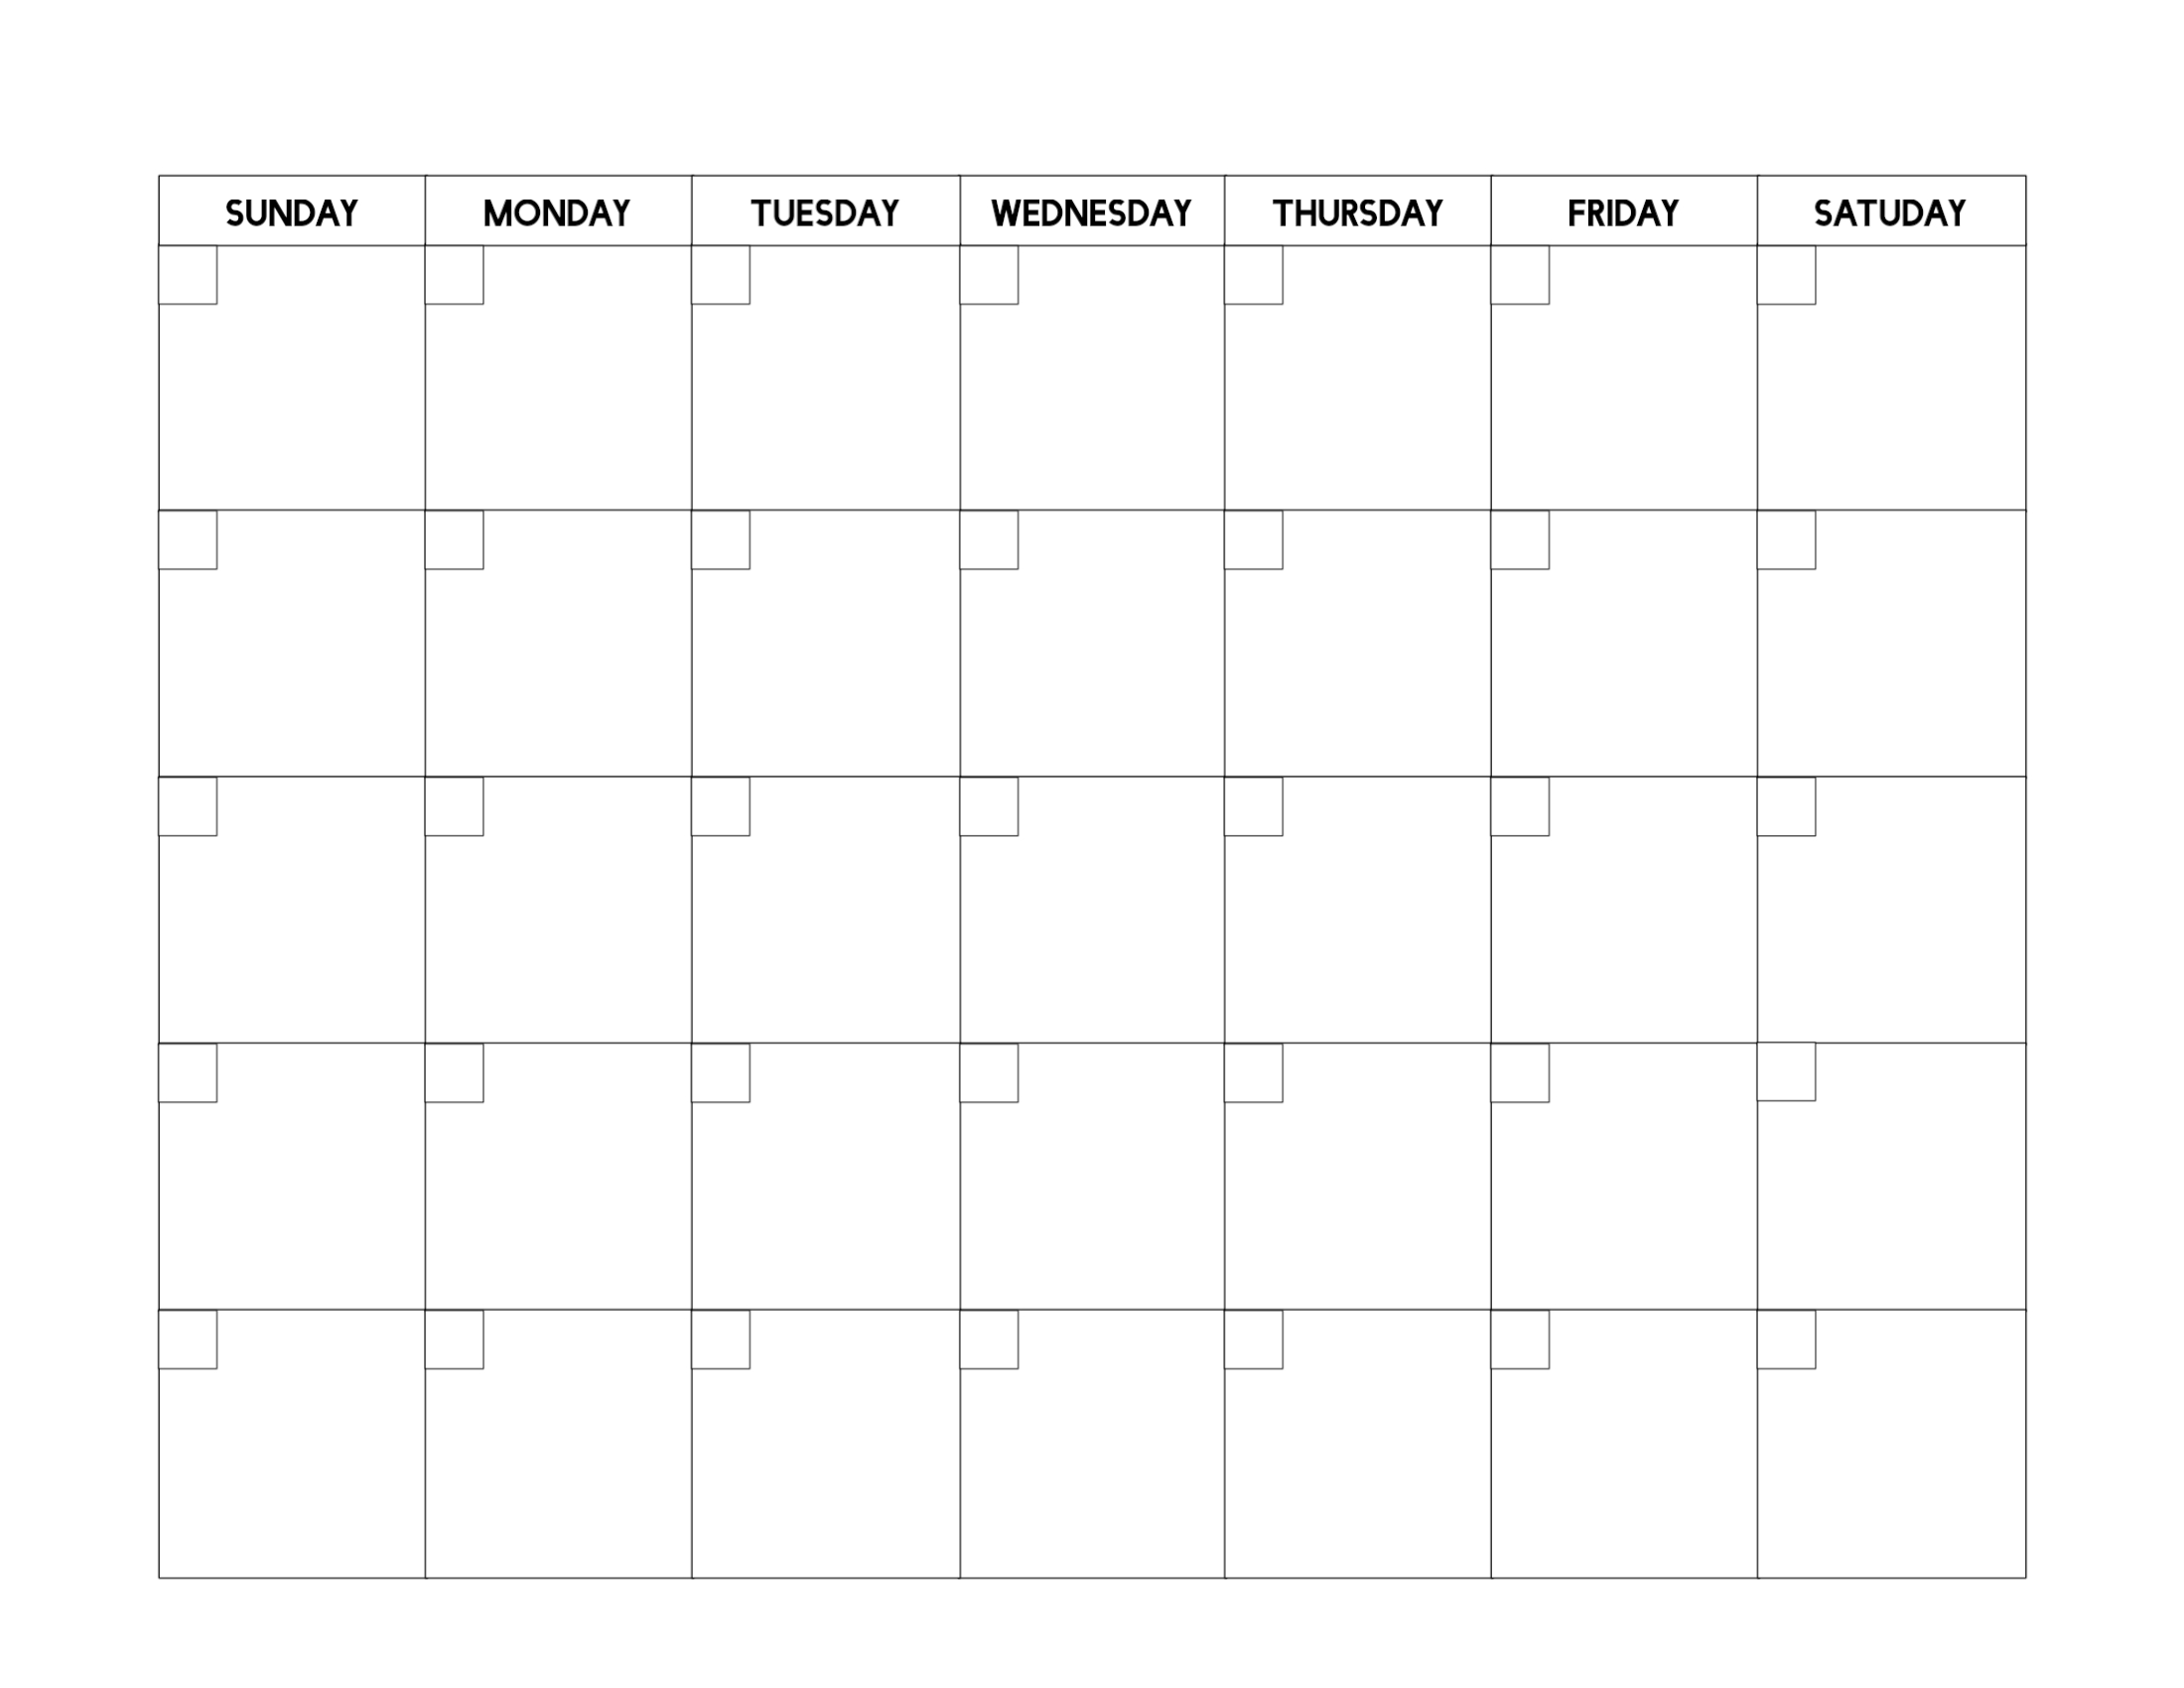 Free Printable Blank Calendar Template - Paper Trail Design intended for Blank Calender Template